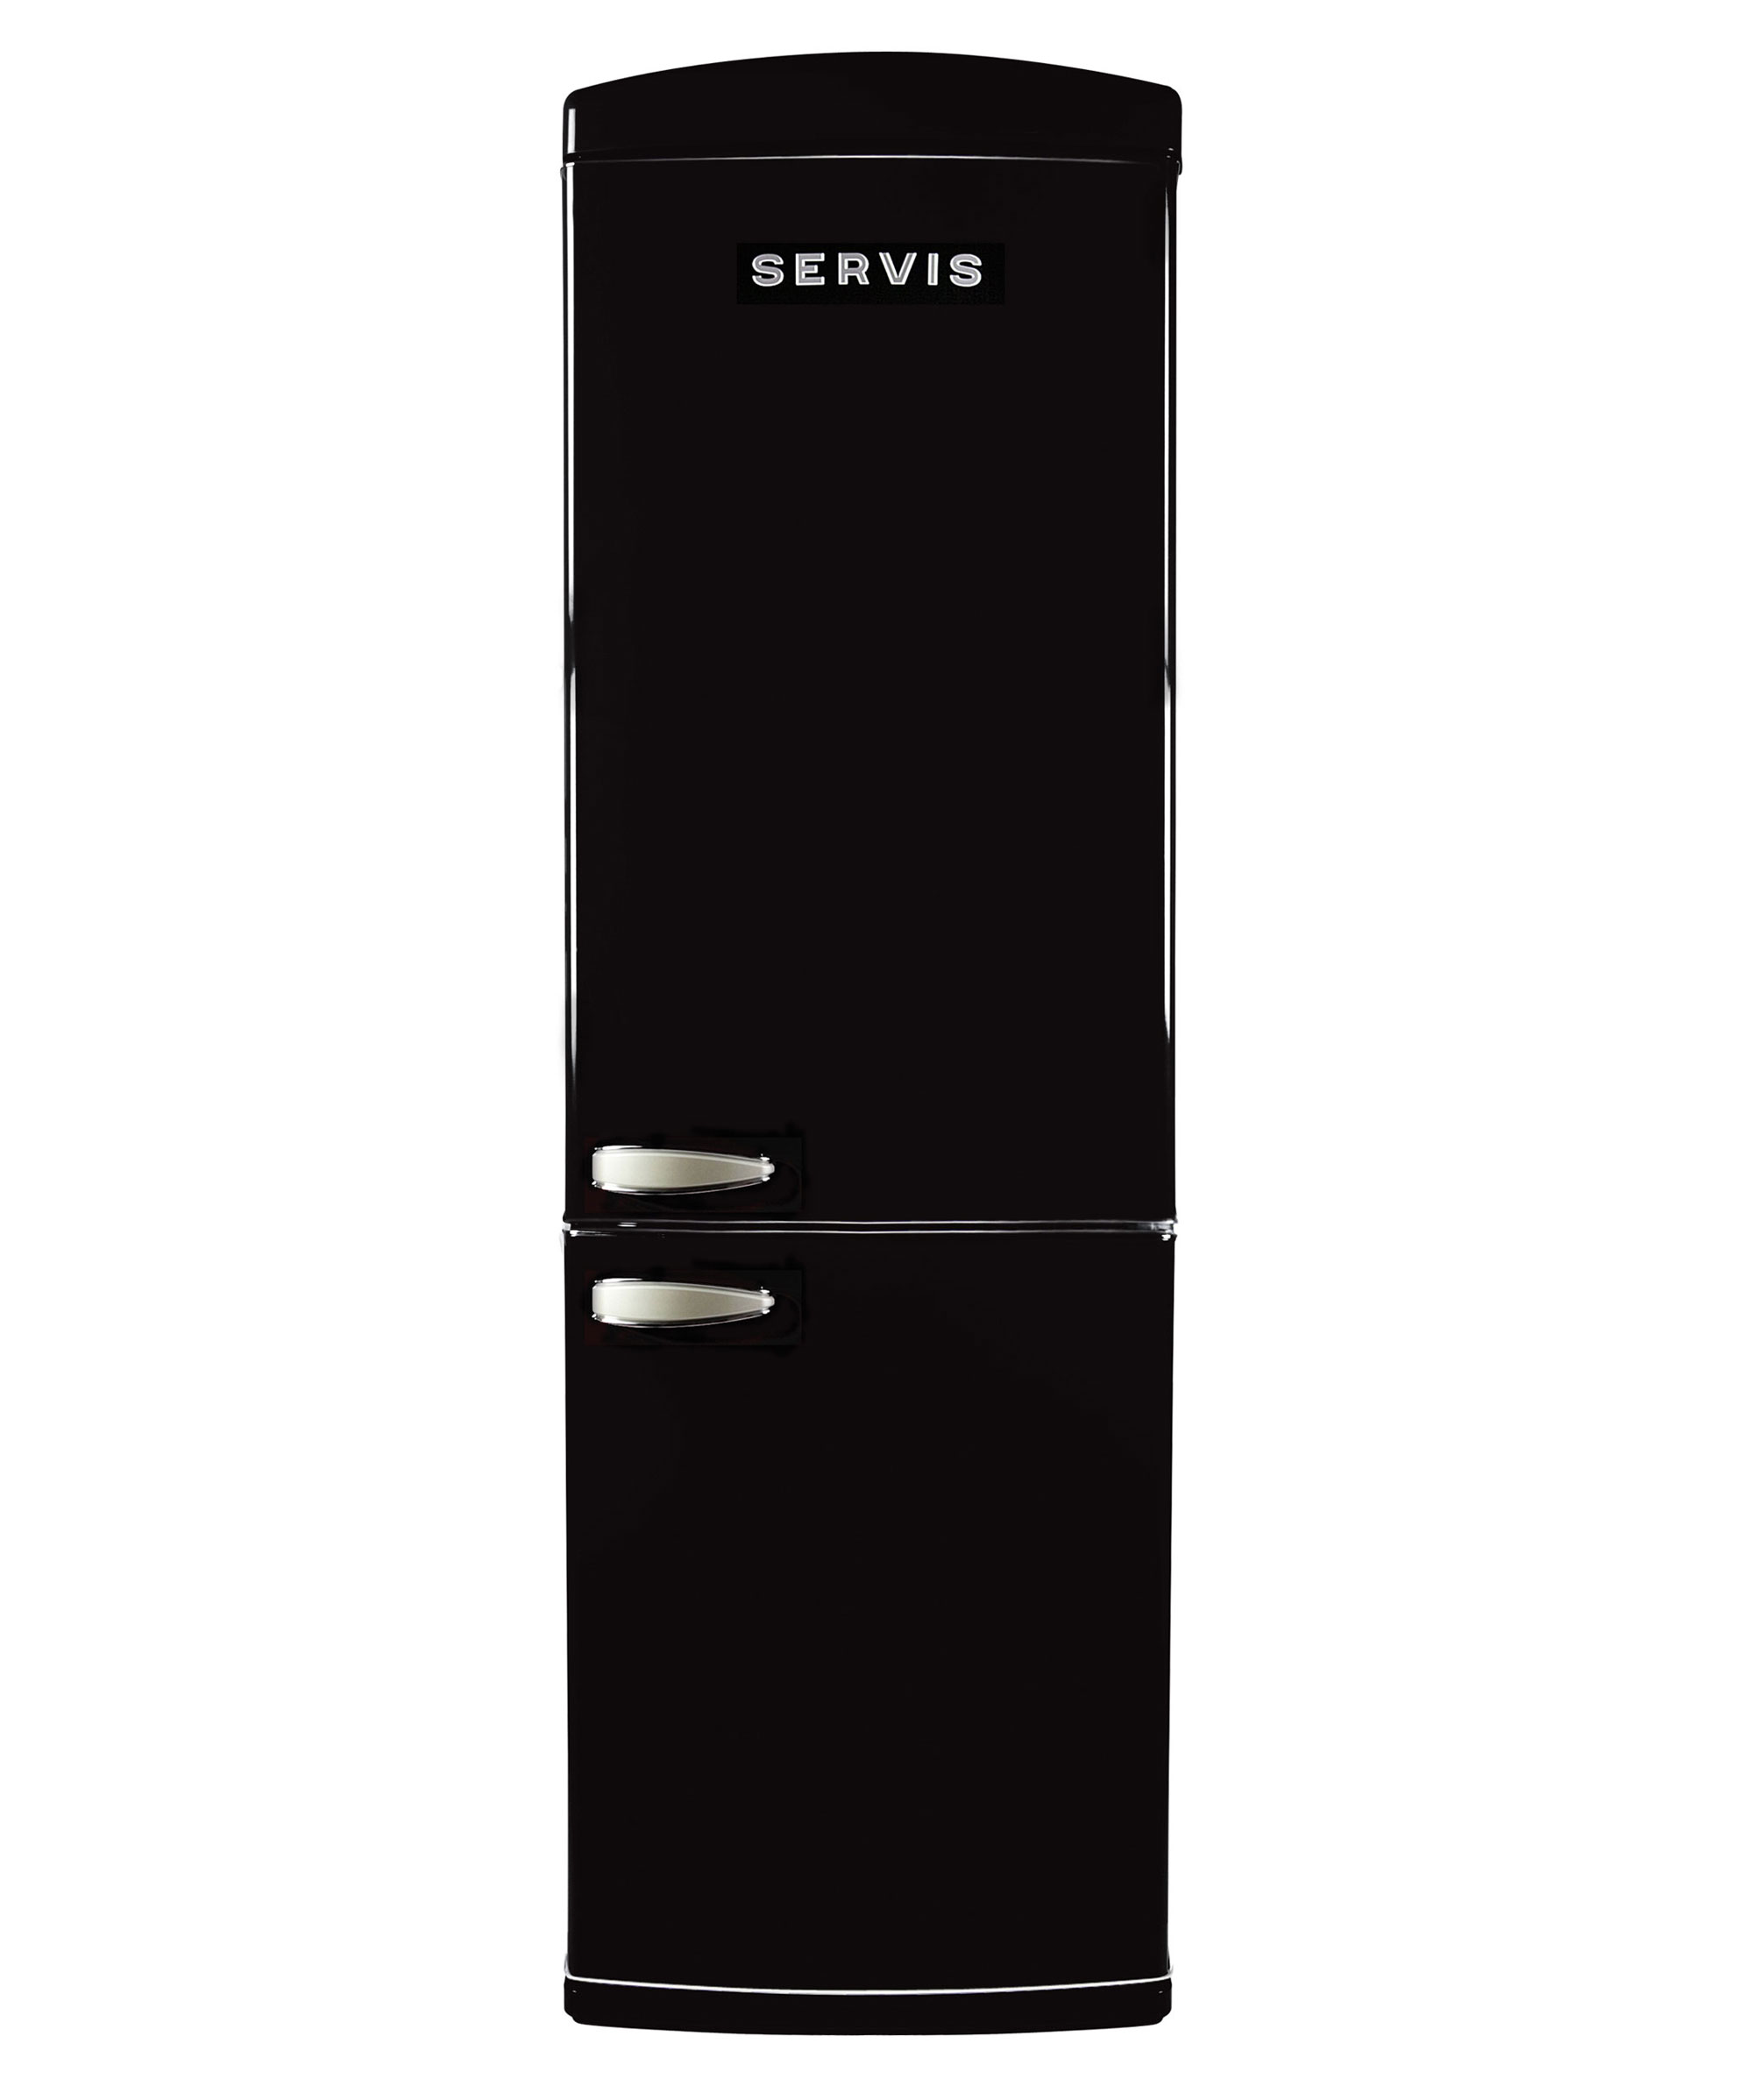 C90185RETROB - Jet Black - Retro Fridge Freezer